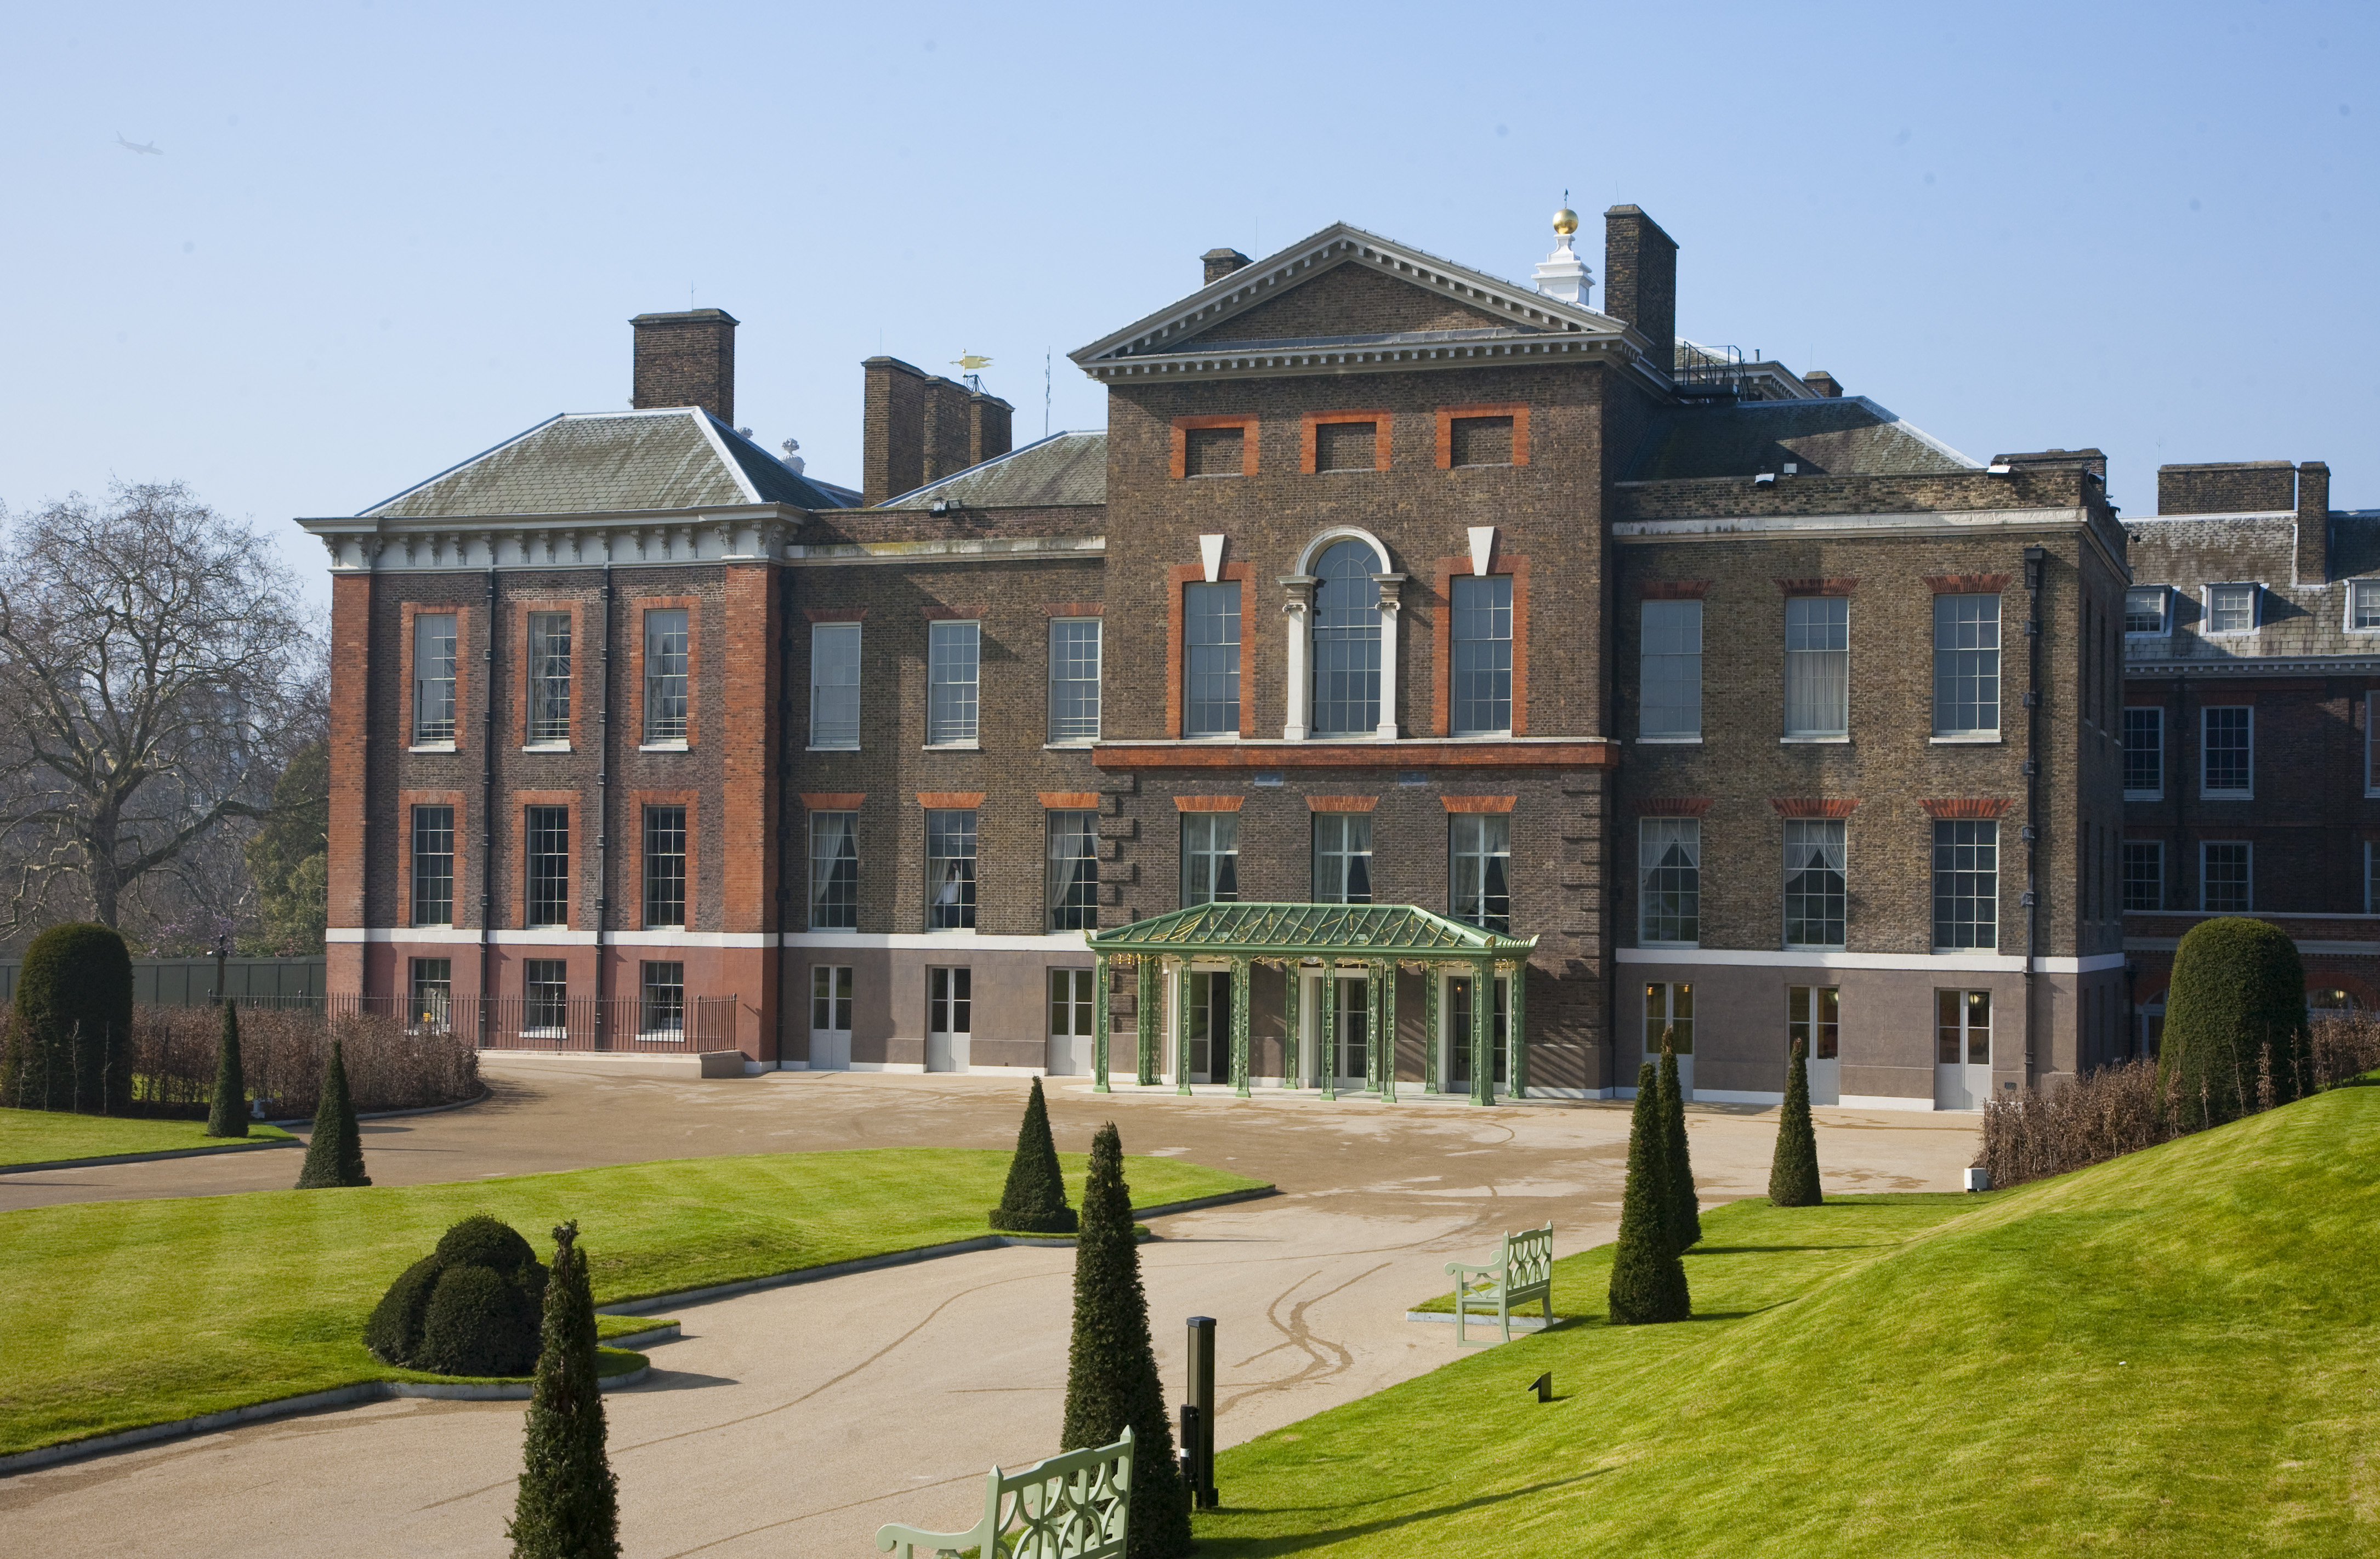 Kensington Palace has been transformed after a £12m transformation